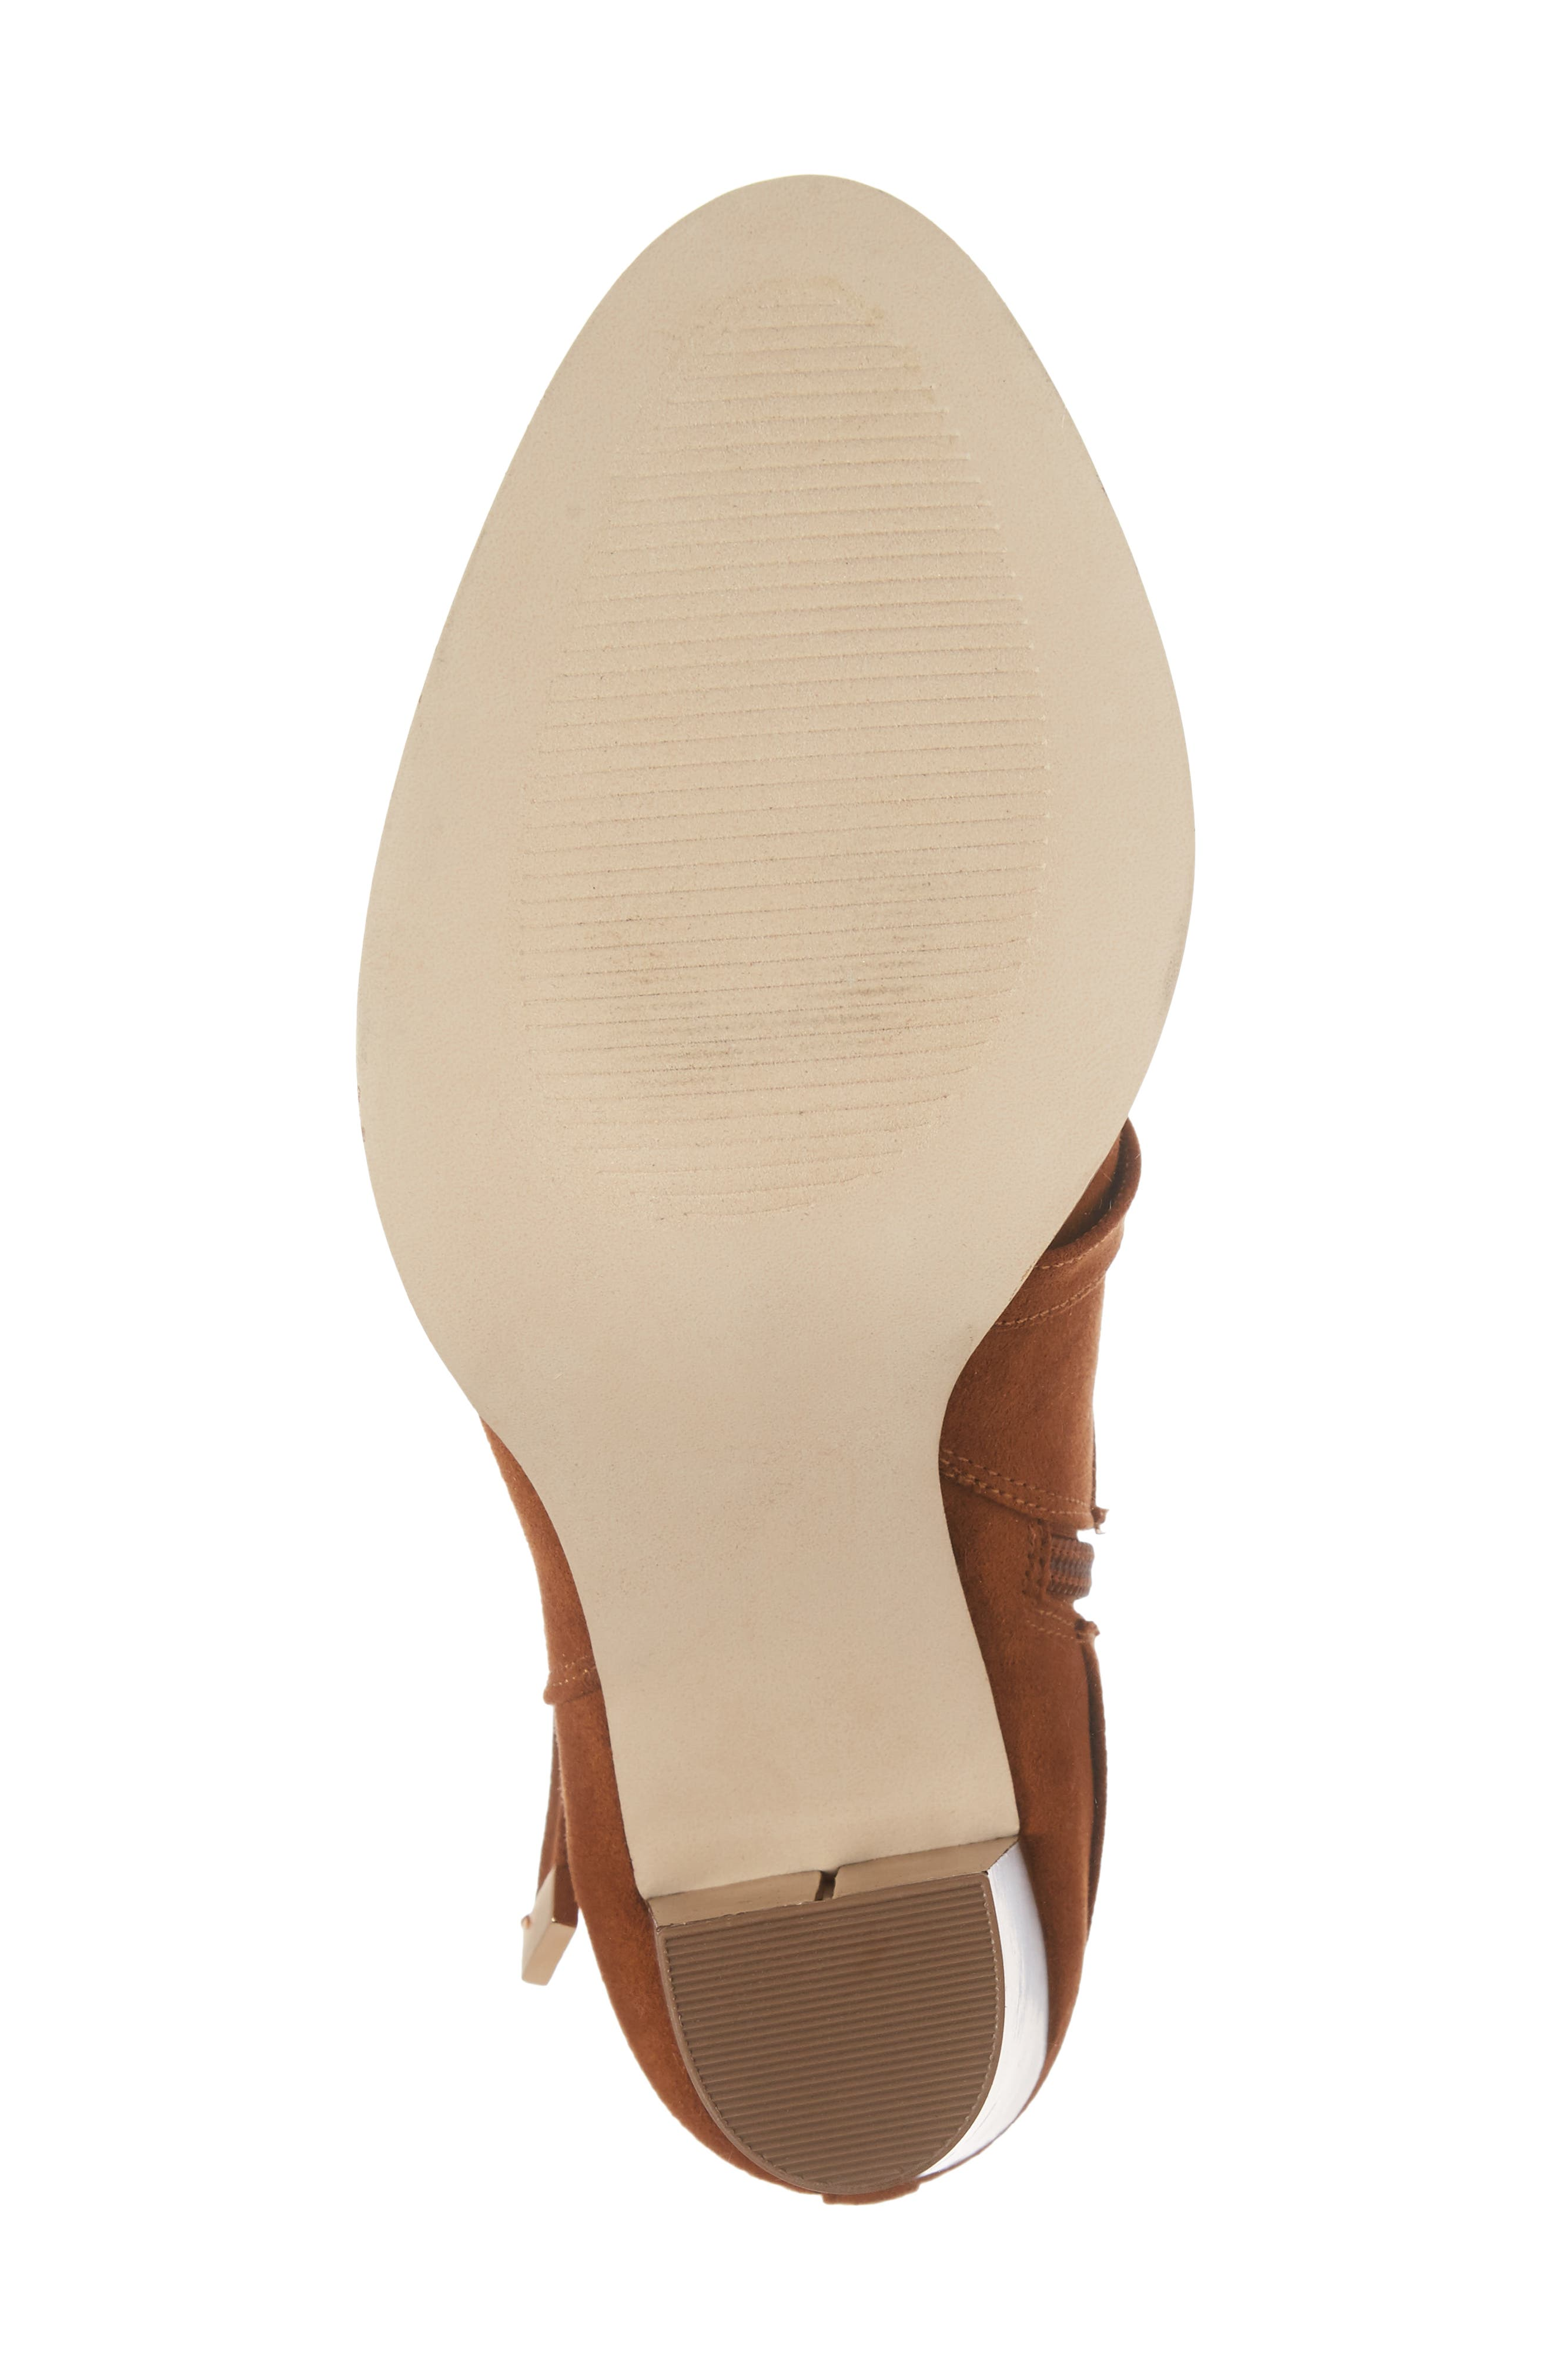 Renly Bootie,                             Alternate thumbnail 6, color,                             Tan Suede